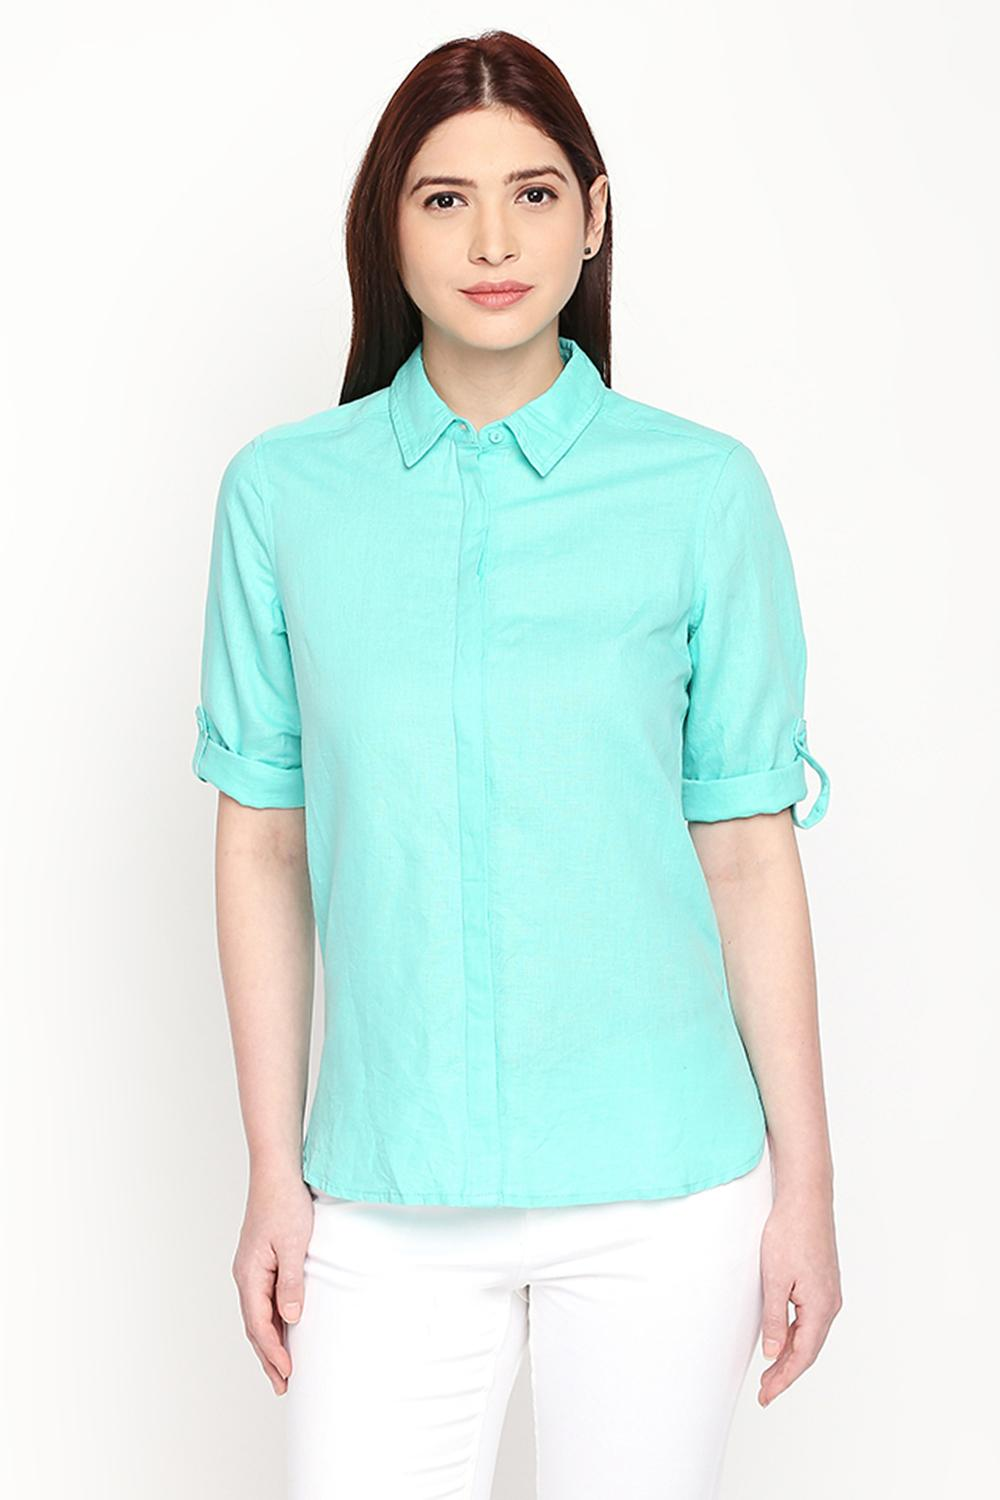 be8d3f44843 Pantaloons Shirts for Women- Buy Women Shirts, Blouses Online ...